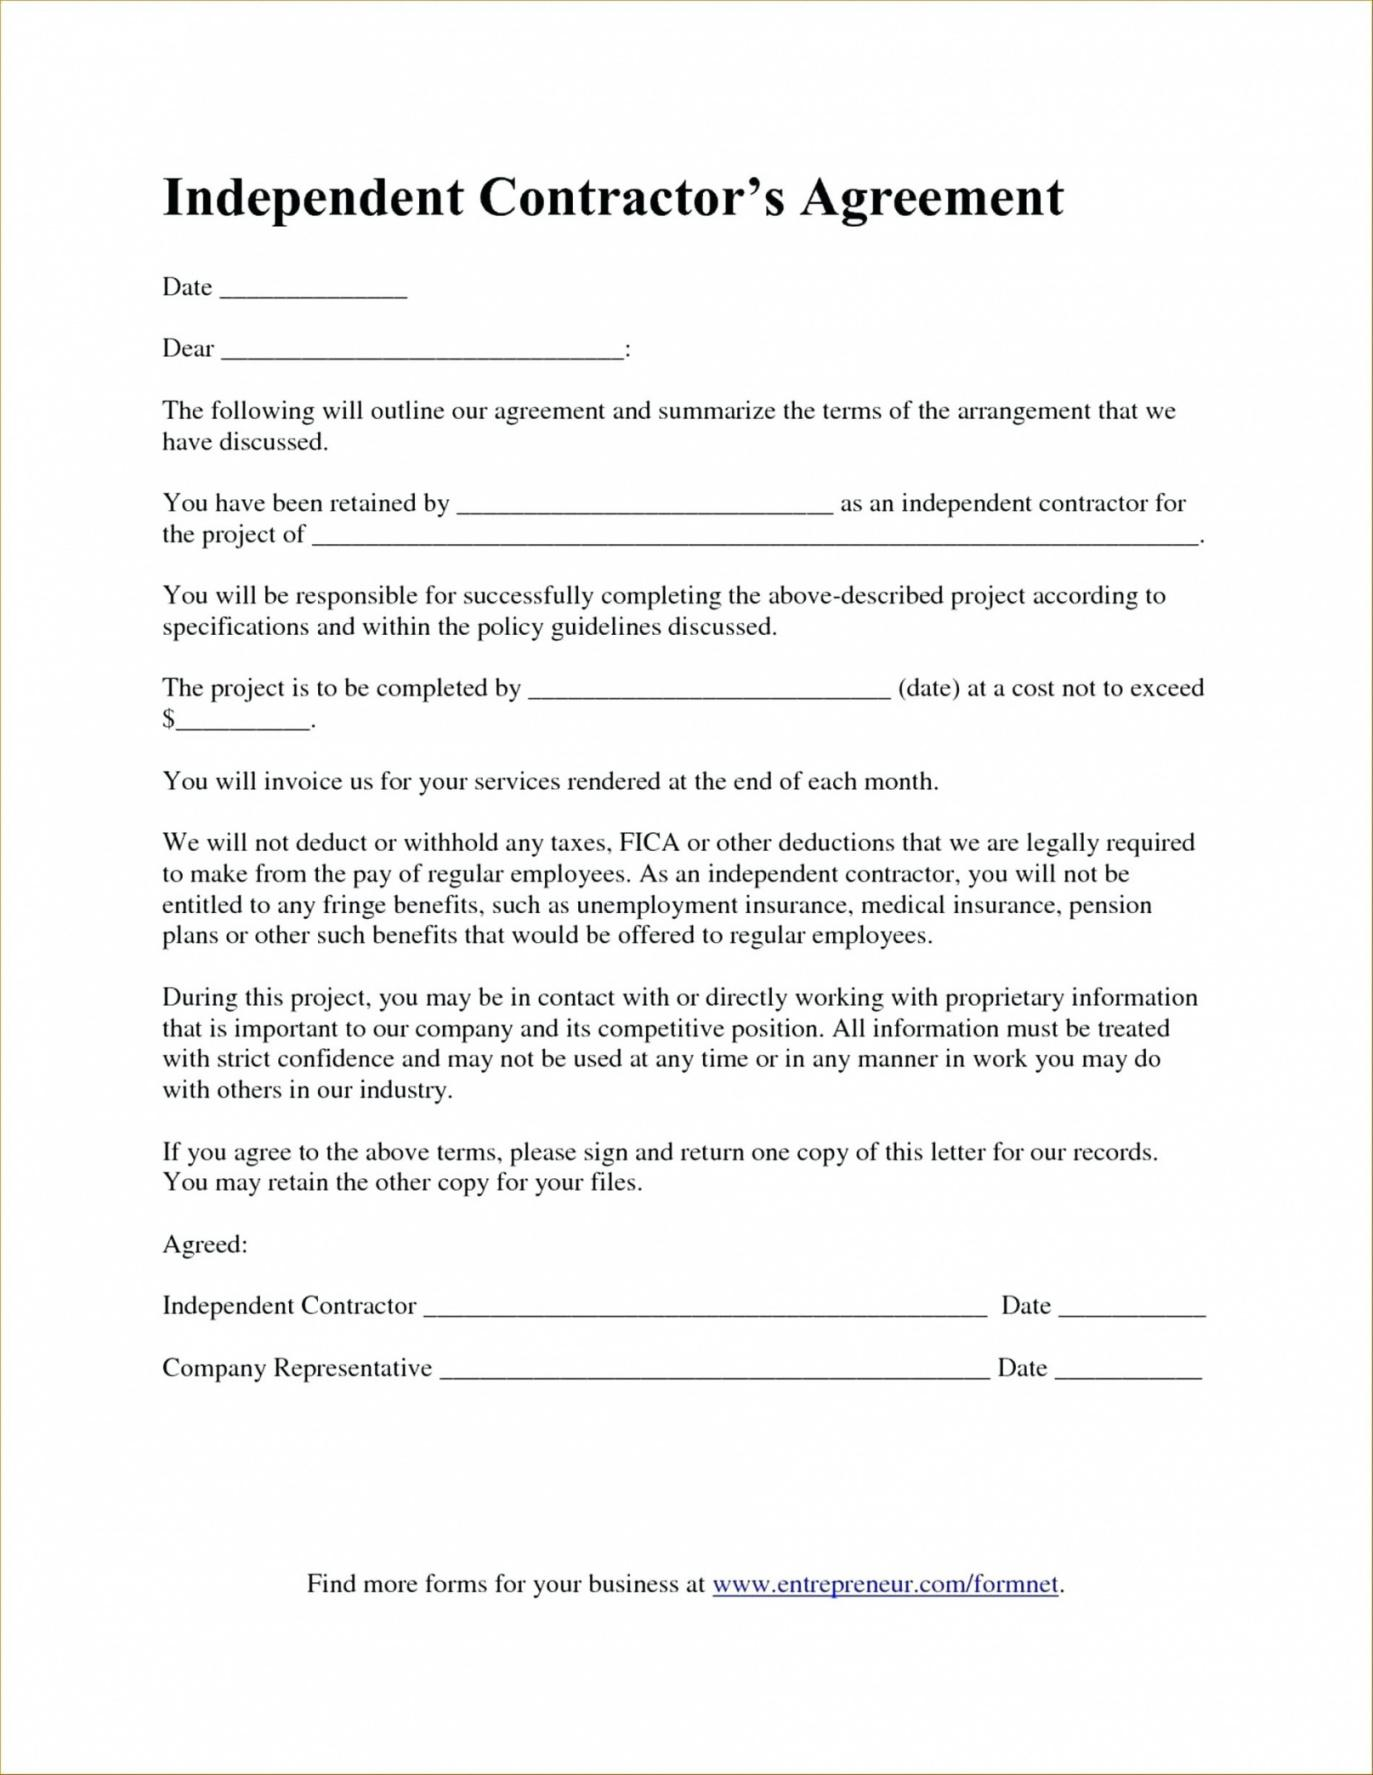 Independent Contractor Agreement Florida Contract Form Pdf